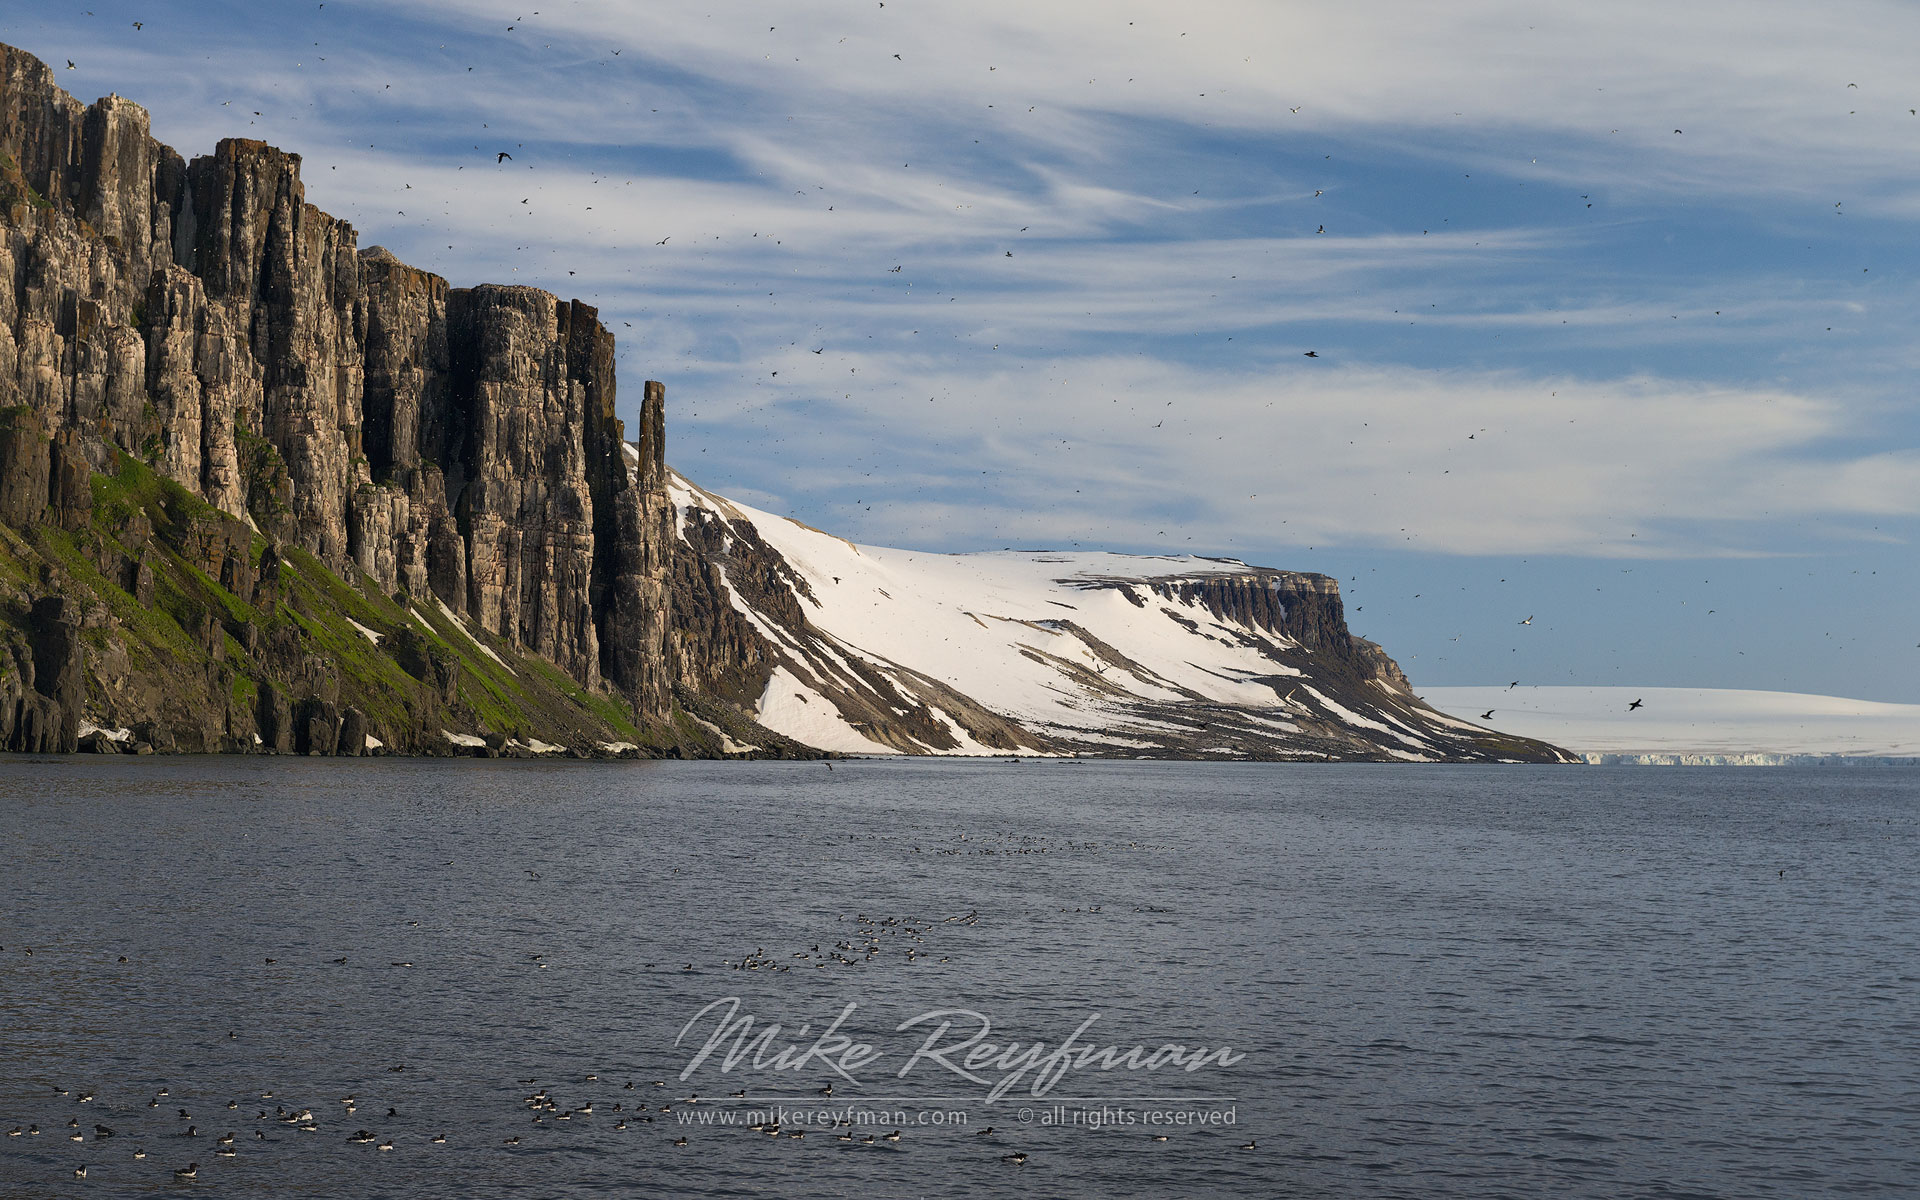 Thick-billed Murres or Brunnich's Guillemots (Uria lomvia). Bird cliff Alkefjellet, Spitsbergen, Svalbard, Norway. - Wildlife-Svalbard-Spitsbergen-Norway - Mike Reyfman Photography